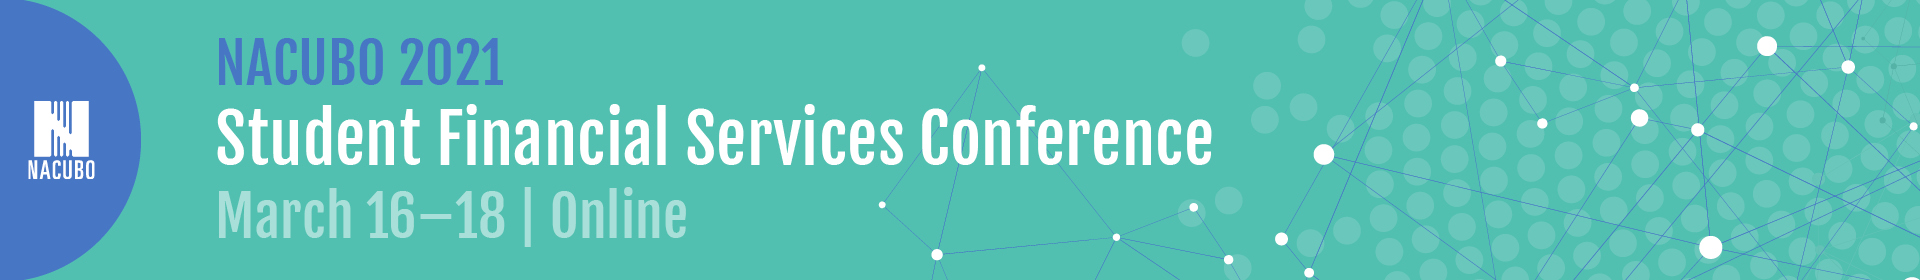 2021 Student Financial Services Conference  Event Banner